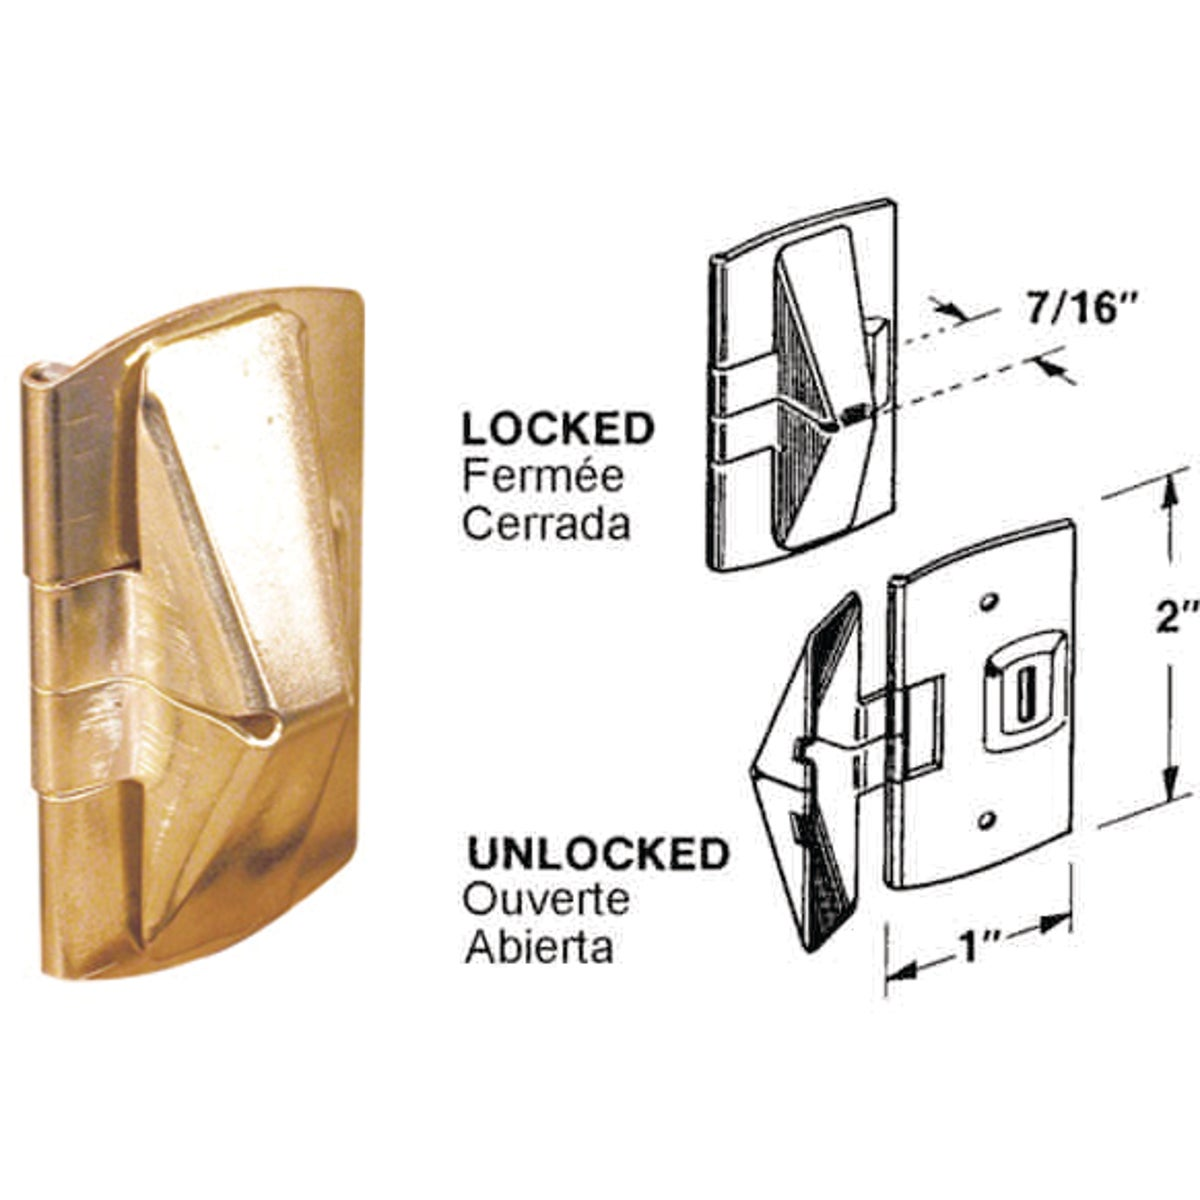 2PK WOOD WINDOW LOCK